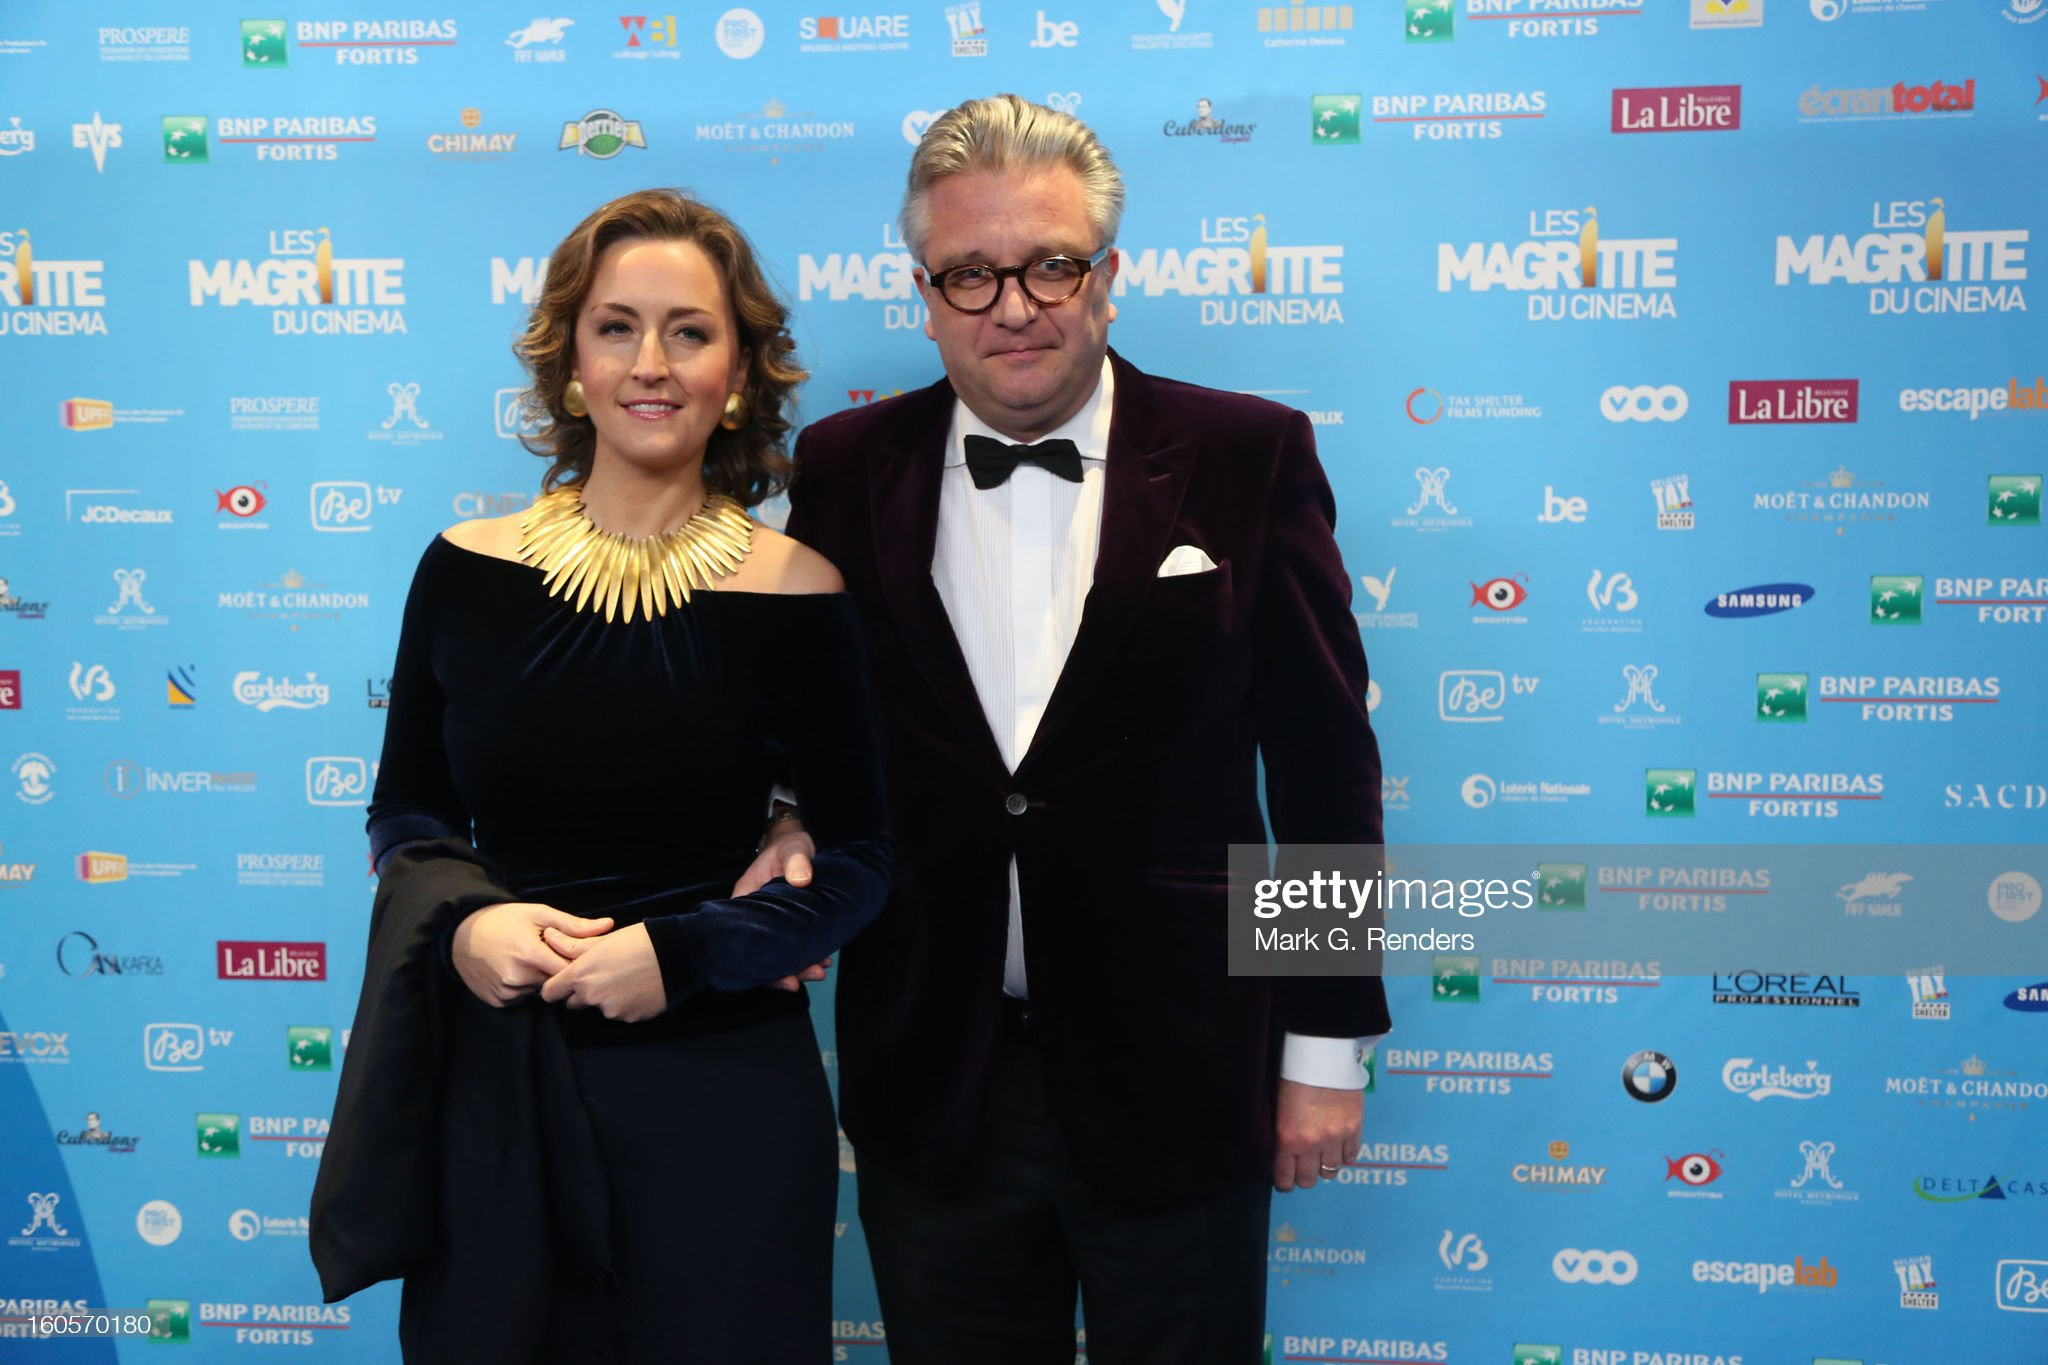 'Les Magritte Du Cinema 2013' - Photocall : News Photo